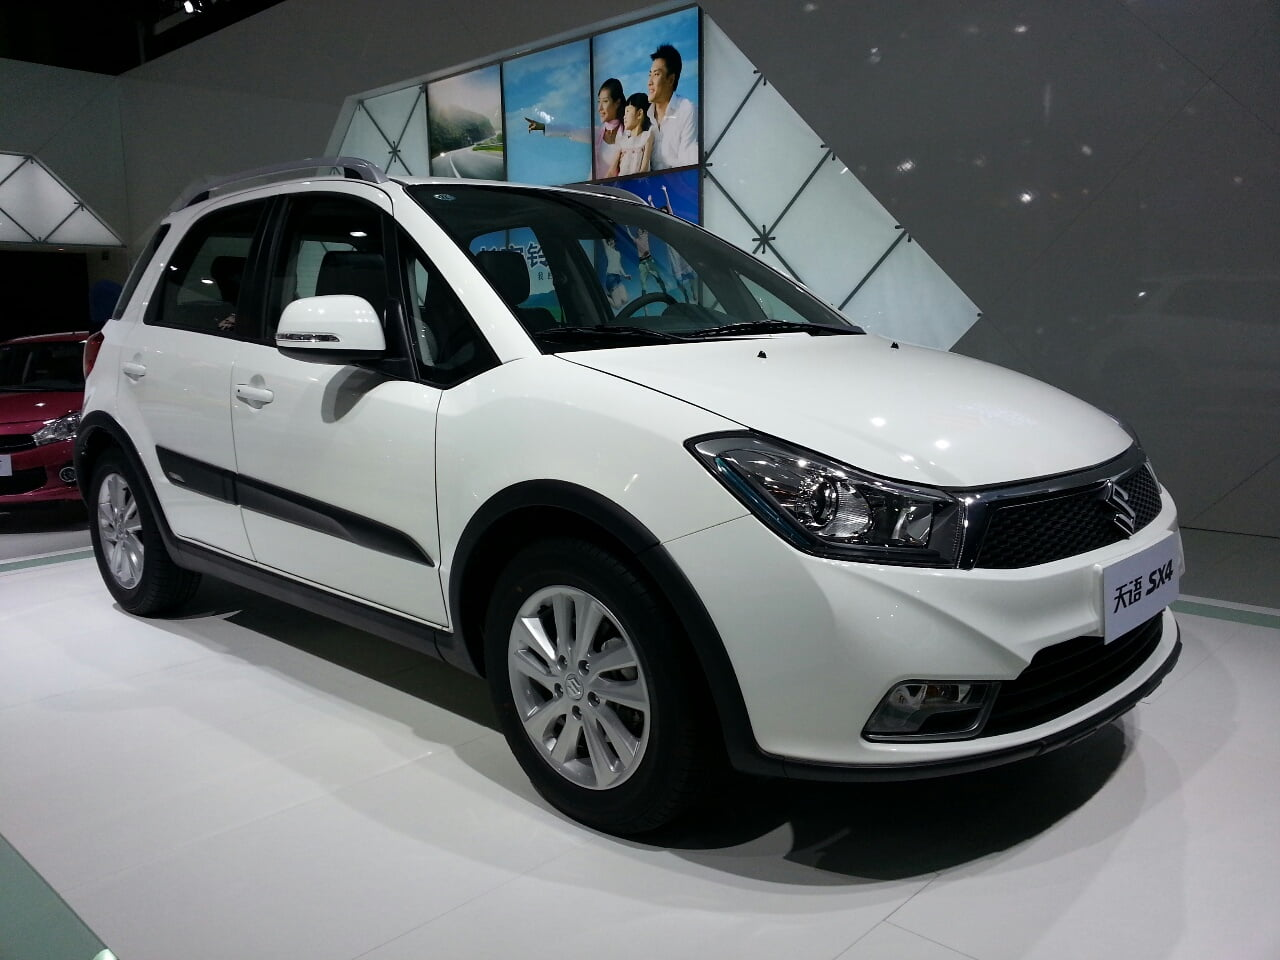 suzuki sx4 crossover facelfited version launched in shanghai. Black Bedroom Furniture Sets. Home Design Ideas